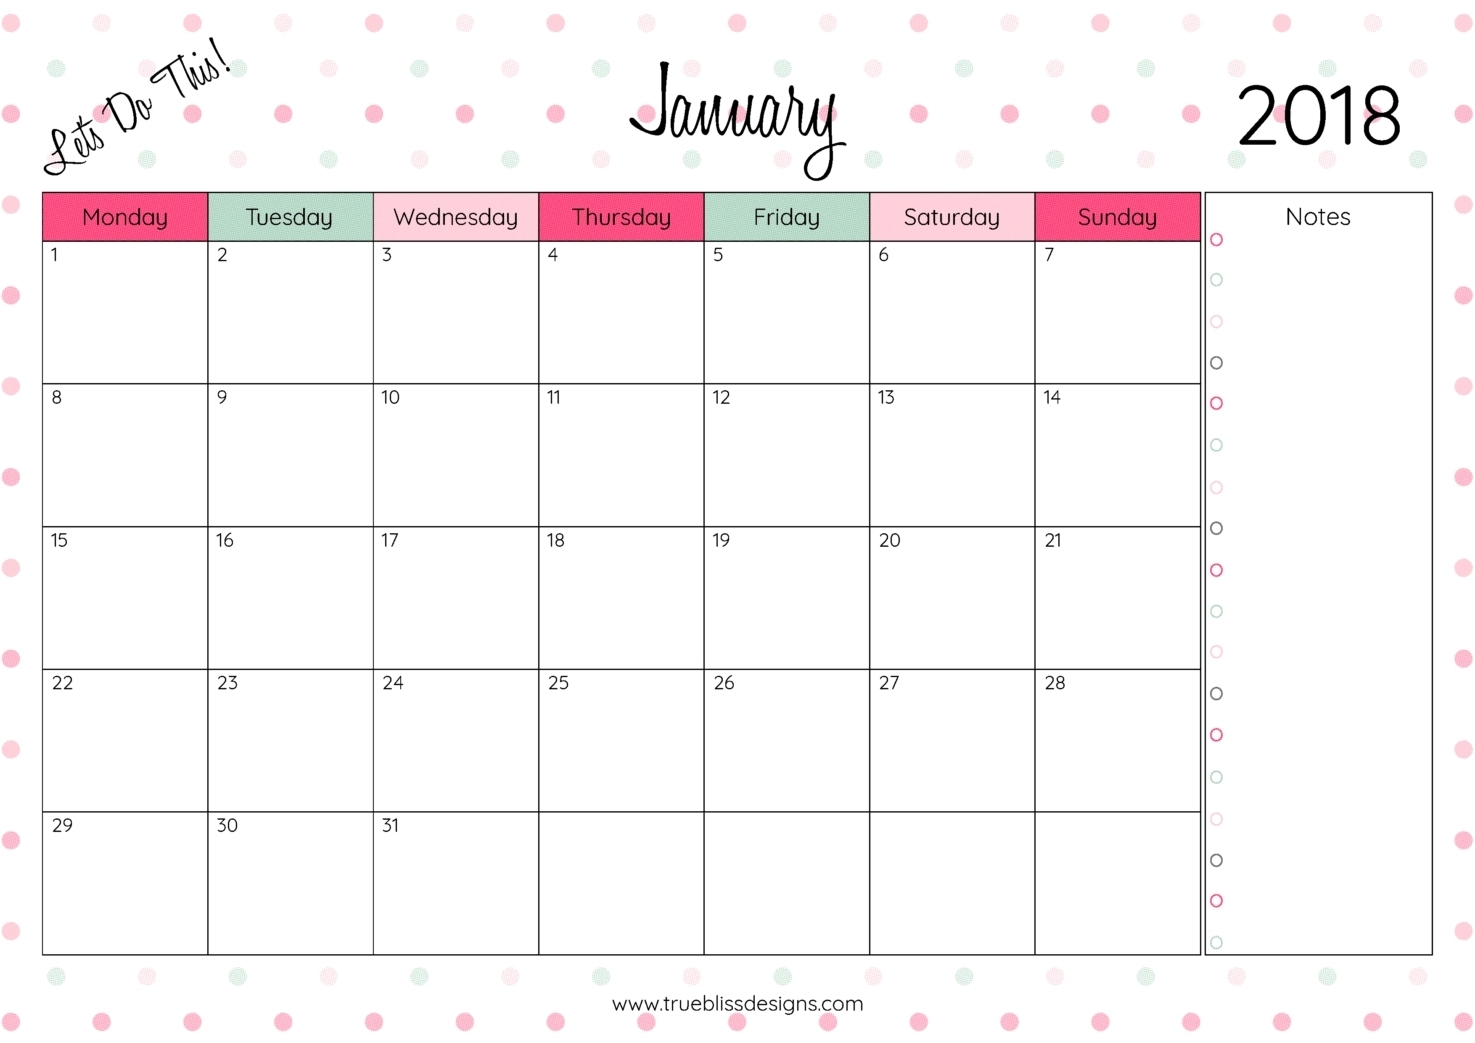 Monthly Calendar Printable Template Notes Column | Template Calendar throughout Monthly Calendar Printable Template Notes Column